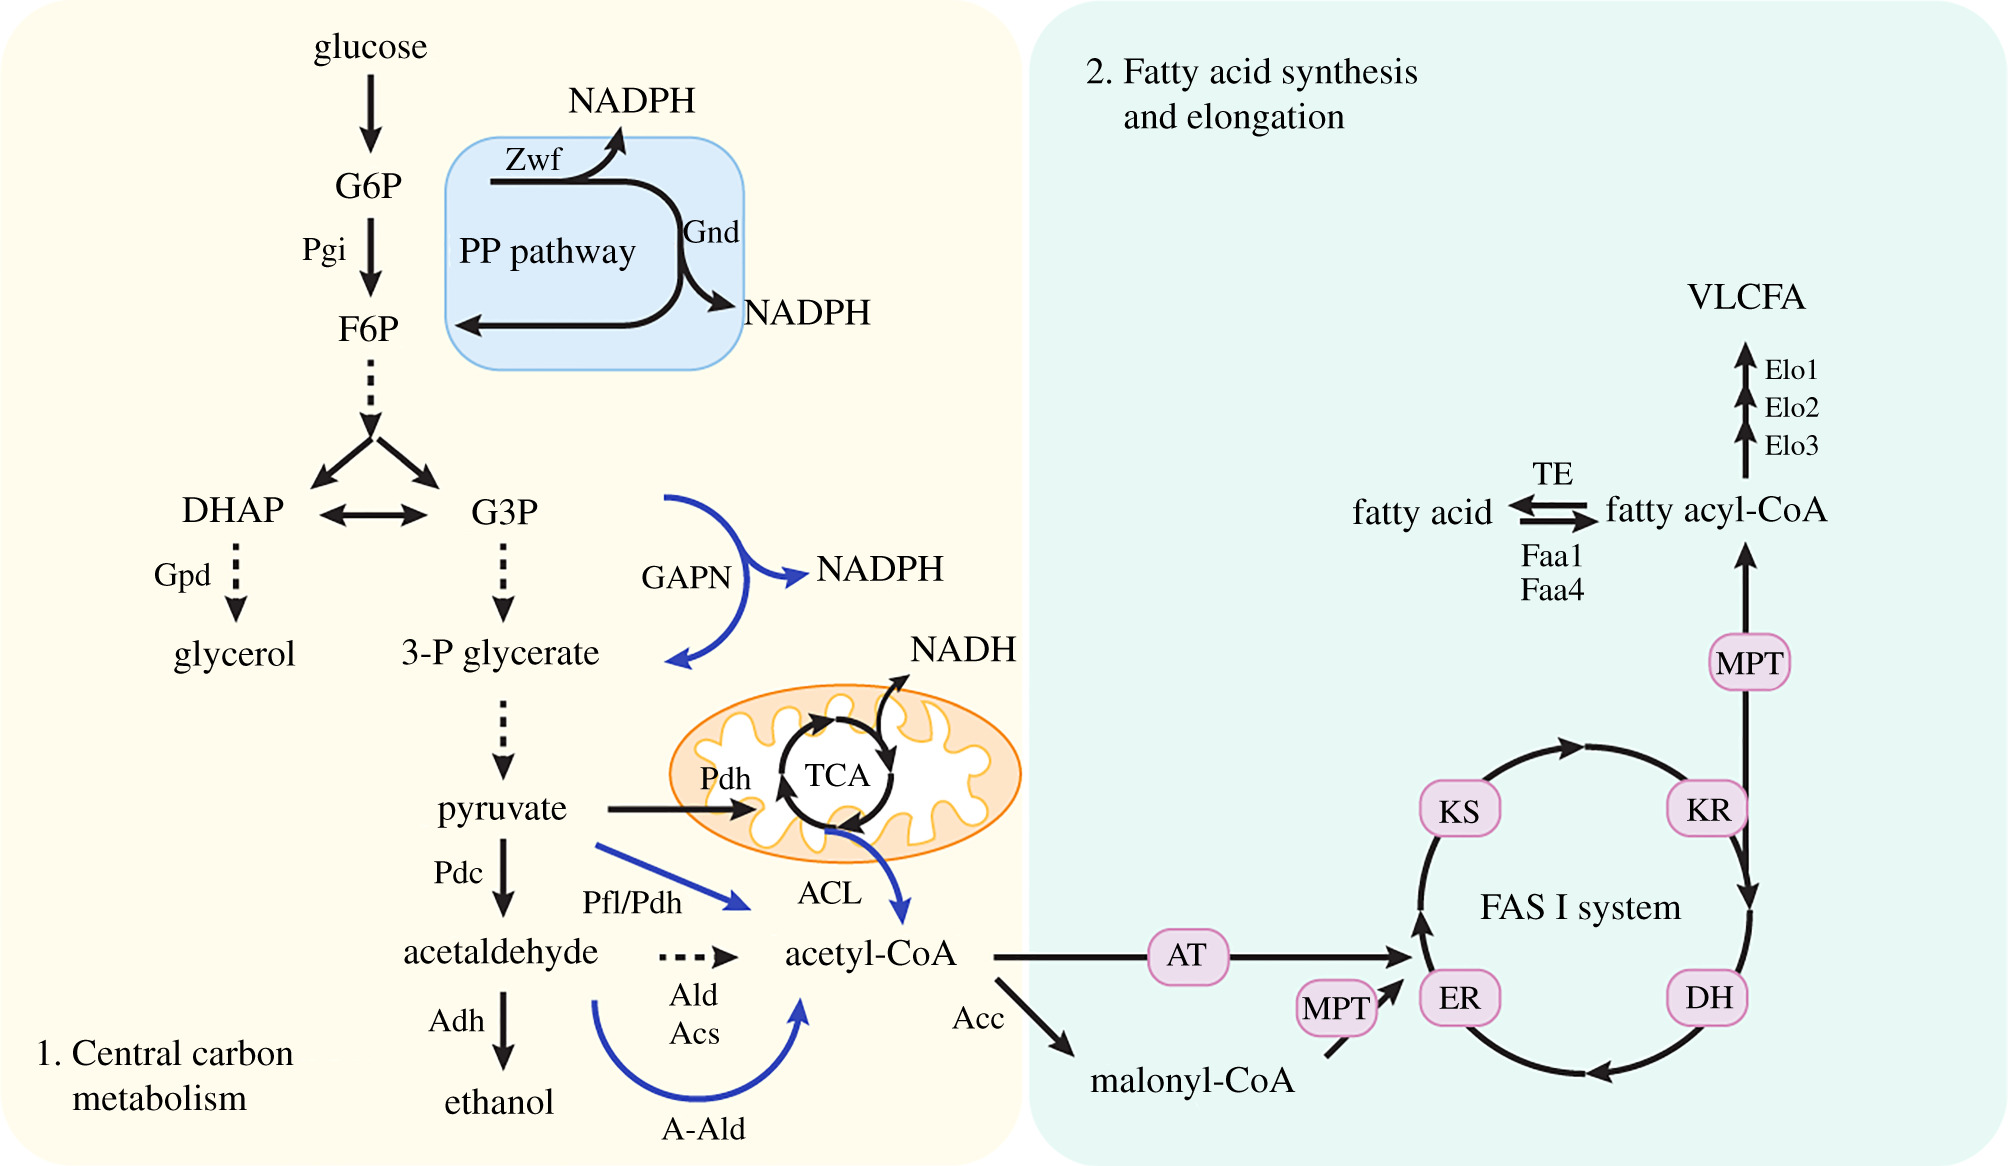 Engineering Saccharomyces cerevisiae cells for production of